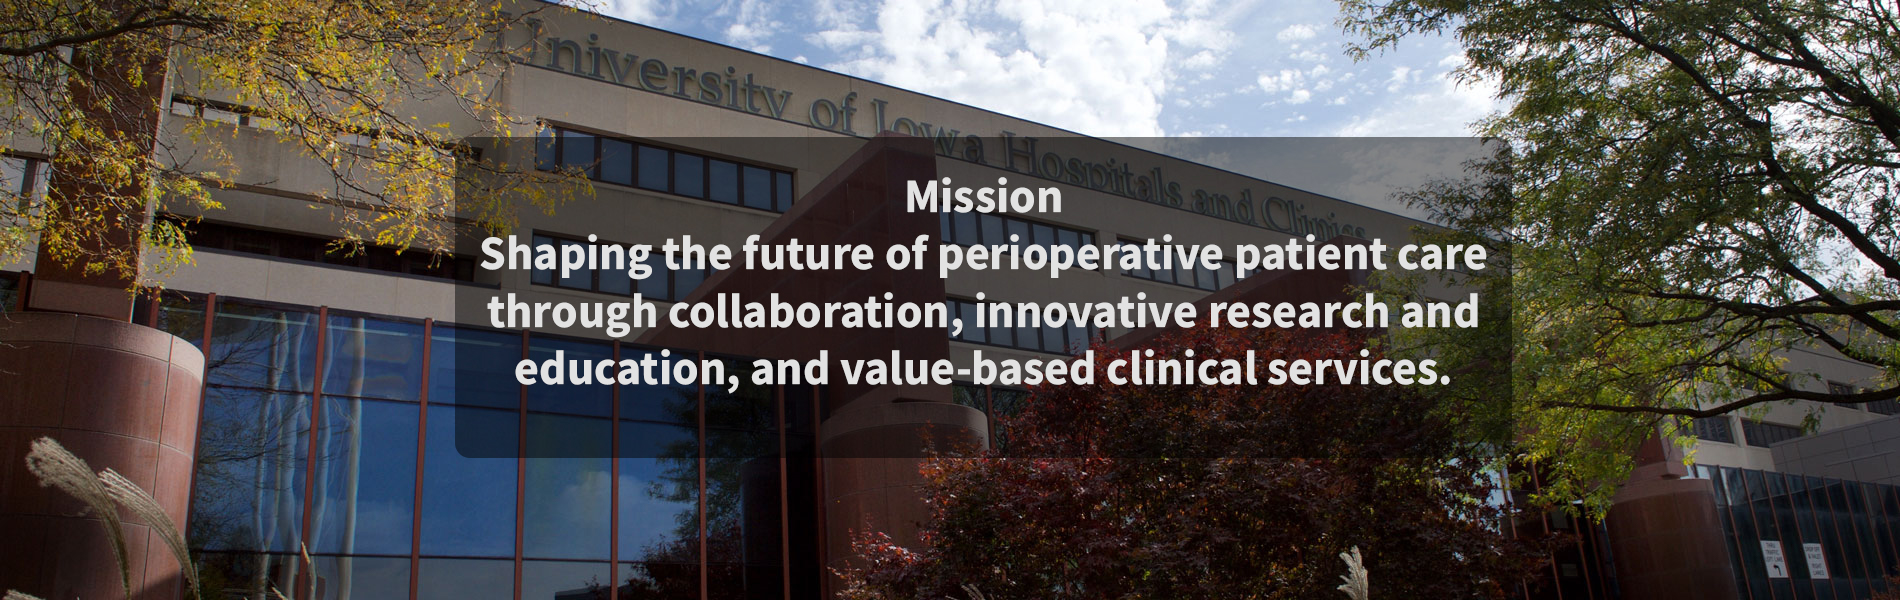 The Department of Anesthesia Mission Statement